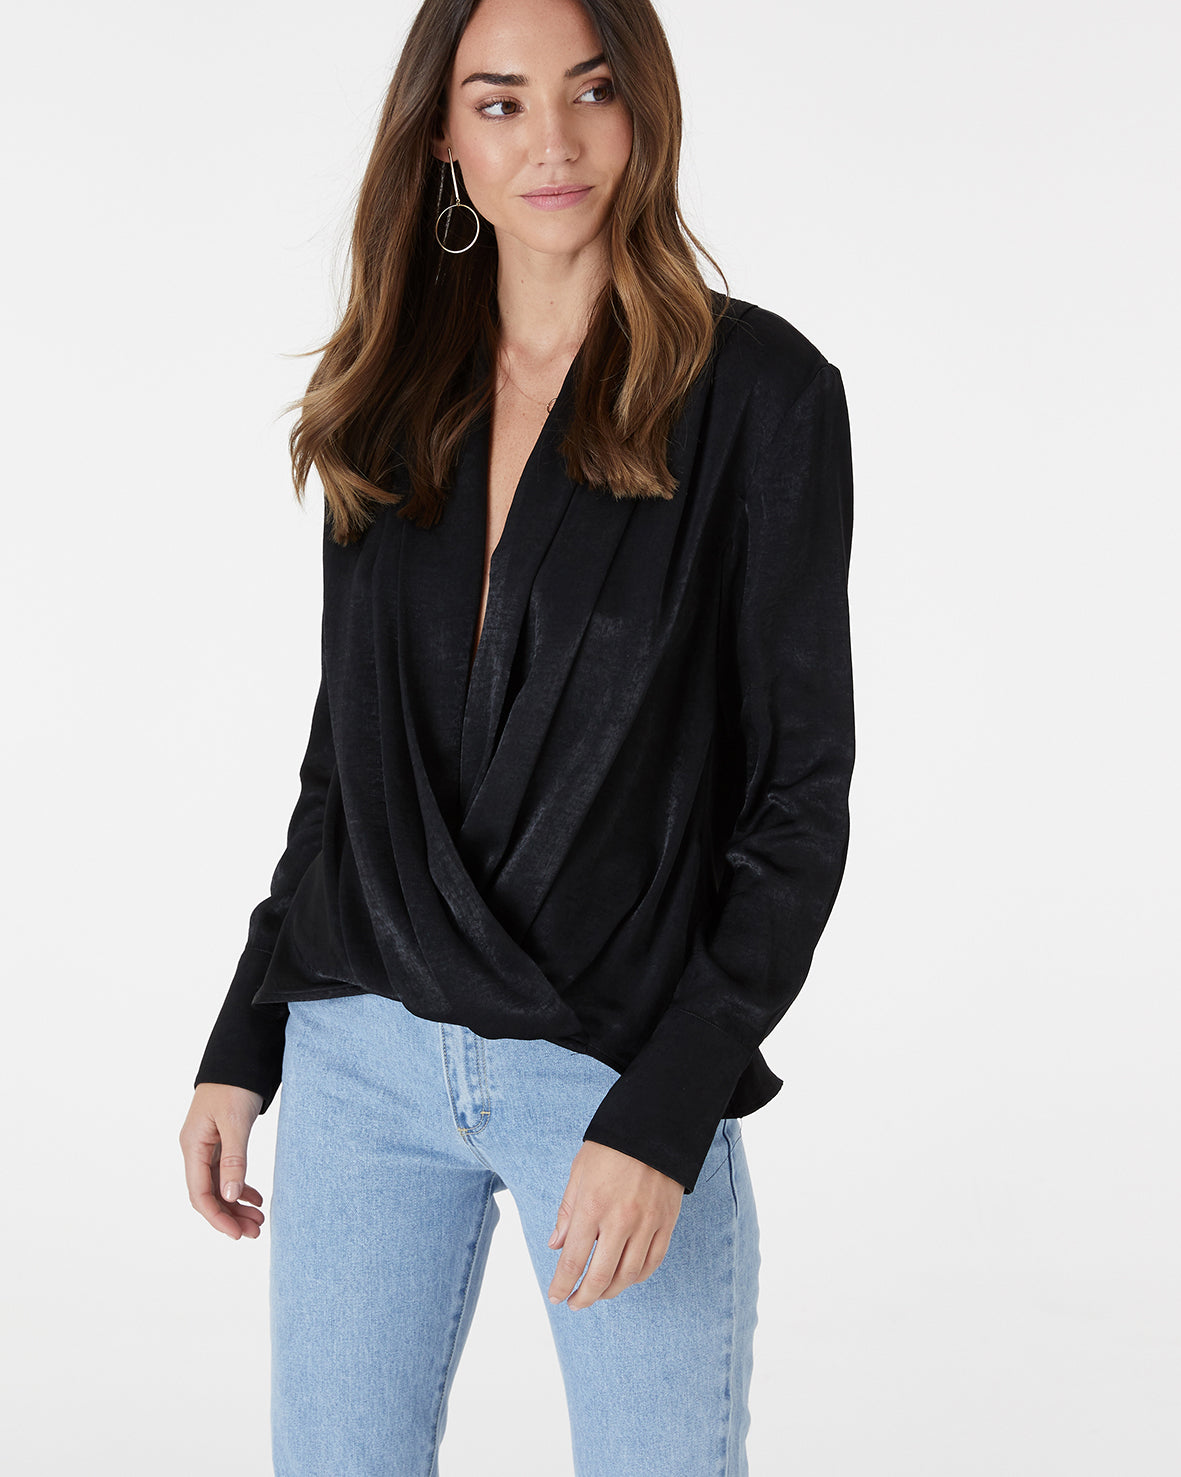 WORTH IT TOP - BLACK